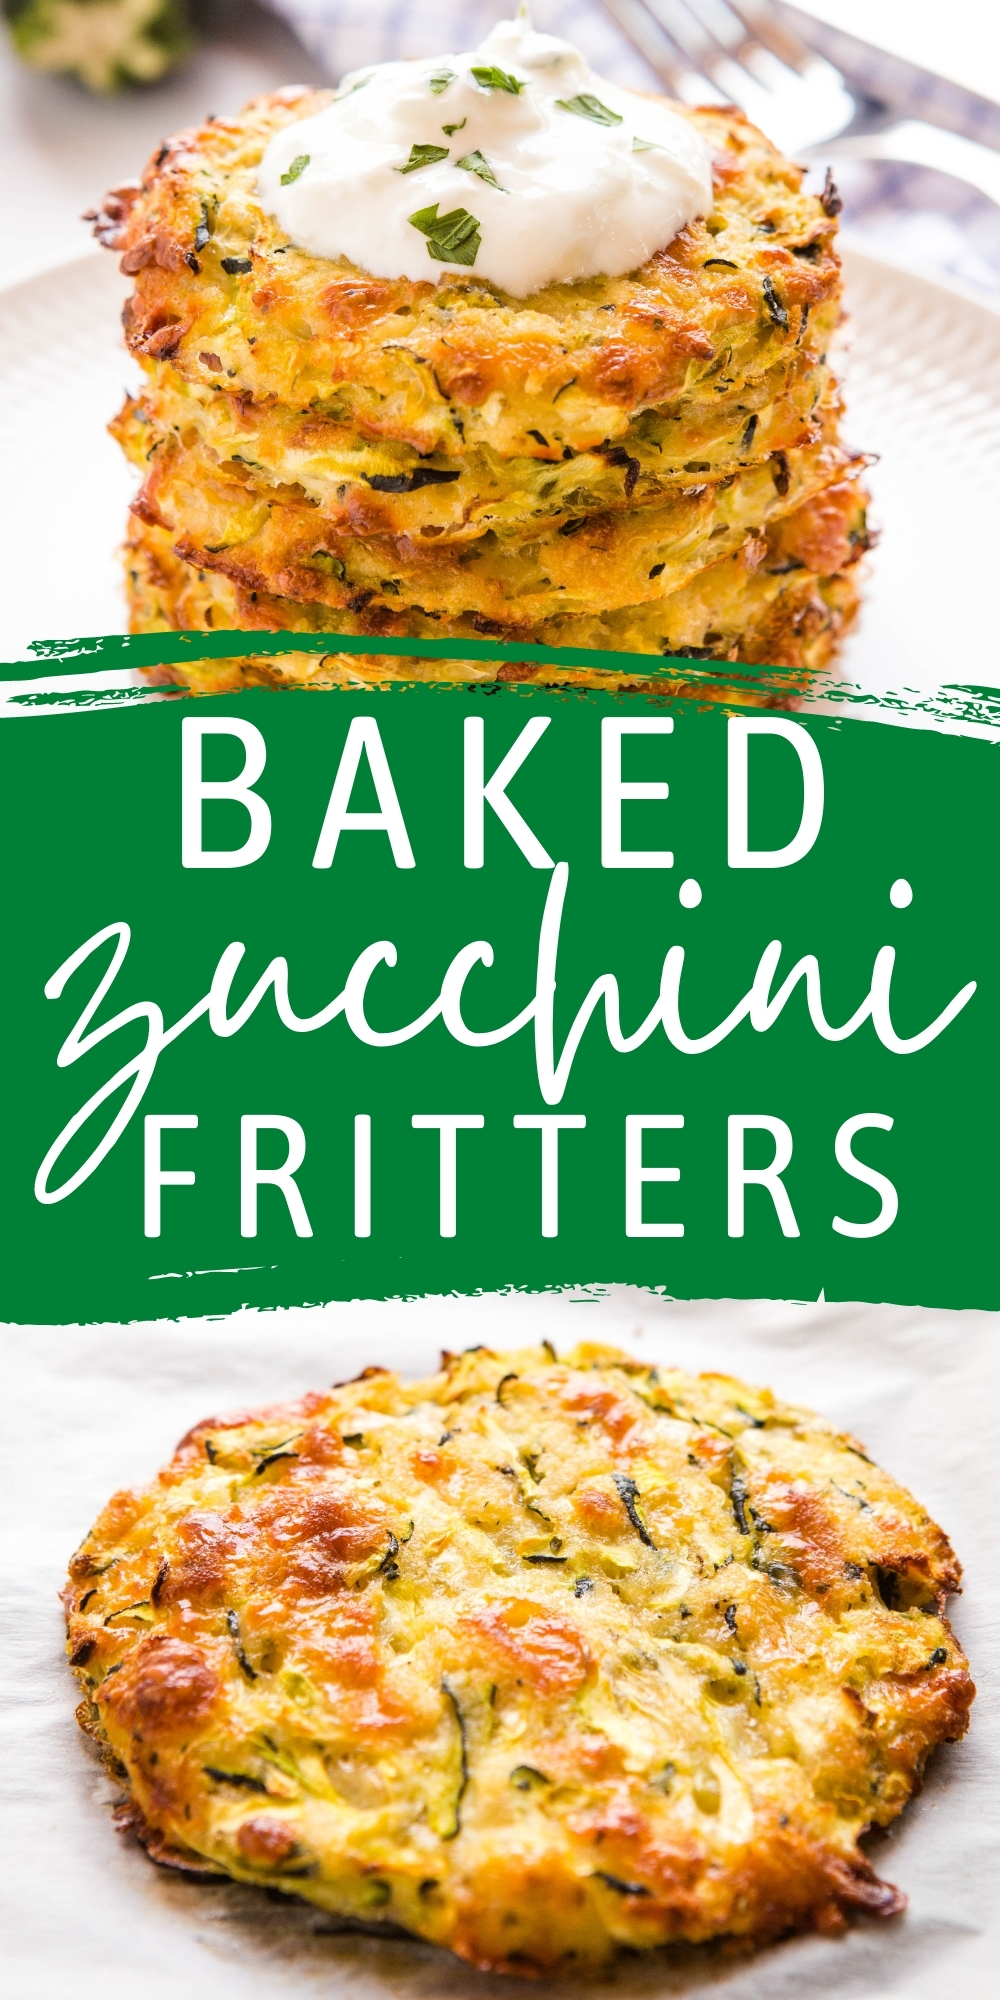 These Baked Zucchini Fritters are the perfect easy meal or snack made with fresh zucchini & cheese, and served with tzatziki - packed with flavour and a healthy choice!Recipe from thebusybaker.ca! #zucchini #bakedzucchinifritters #baked #veggie #vegetarian #fritters #easytomake #healthy #familymeal #snack via @busybakerblog